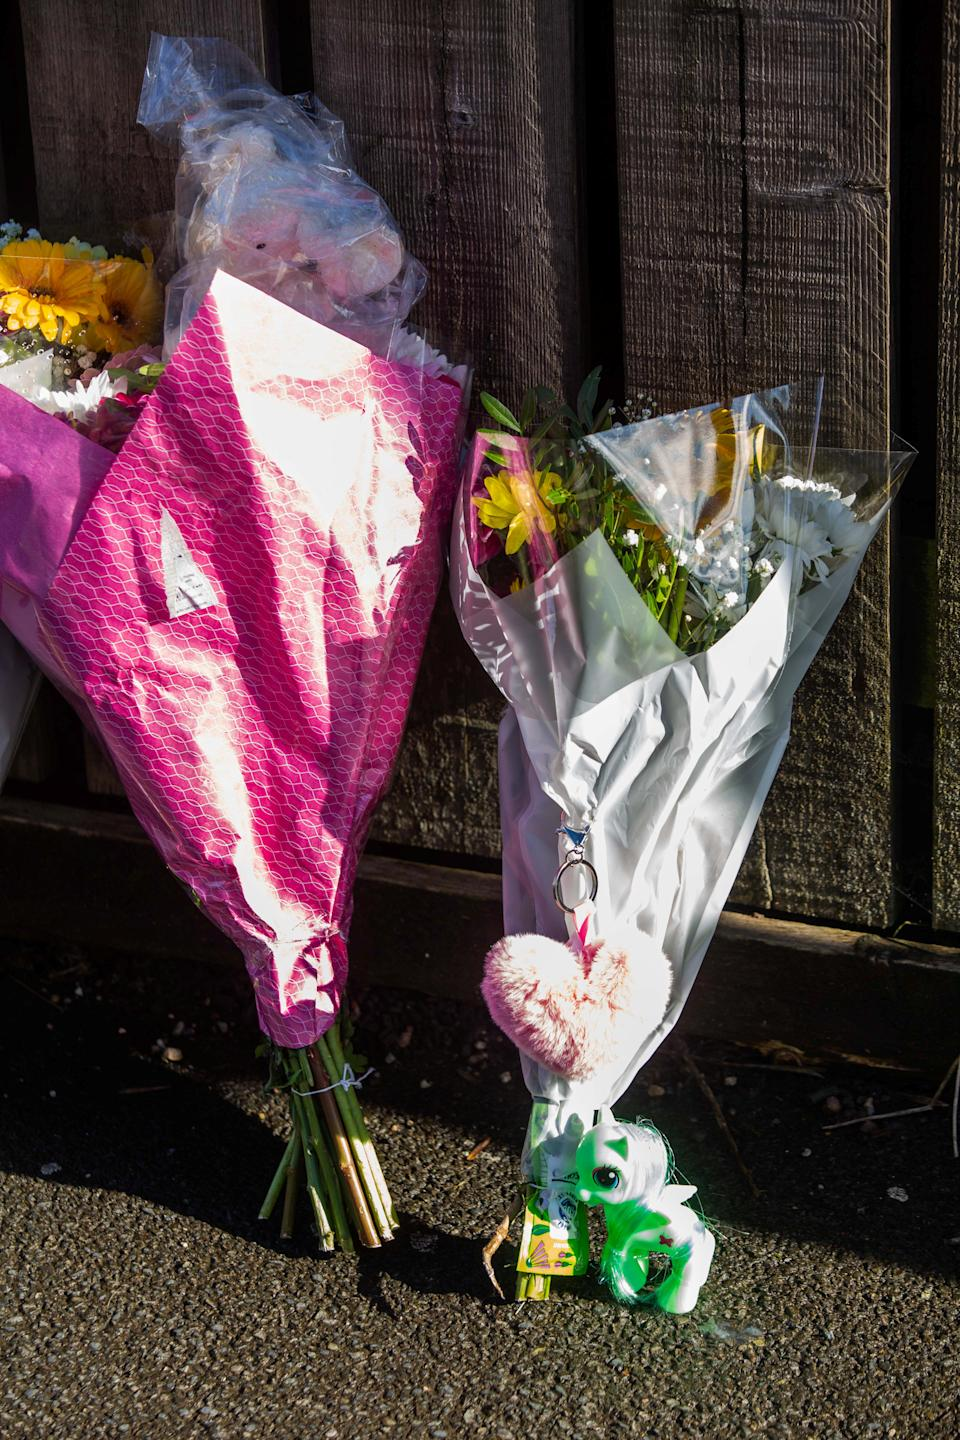 Floral tributes have been left by Clayton Road. (SWNS)